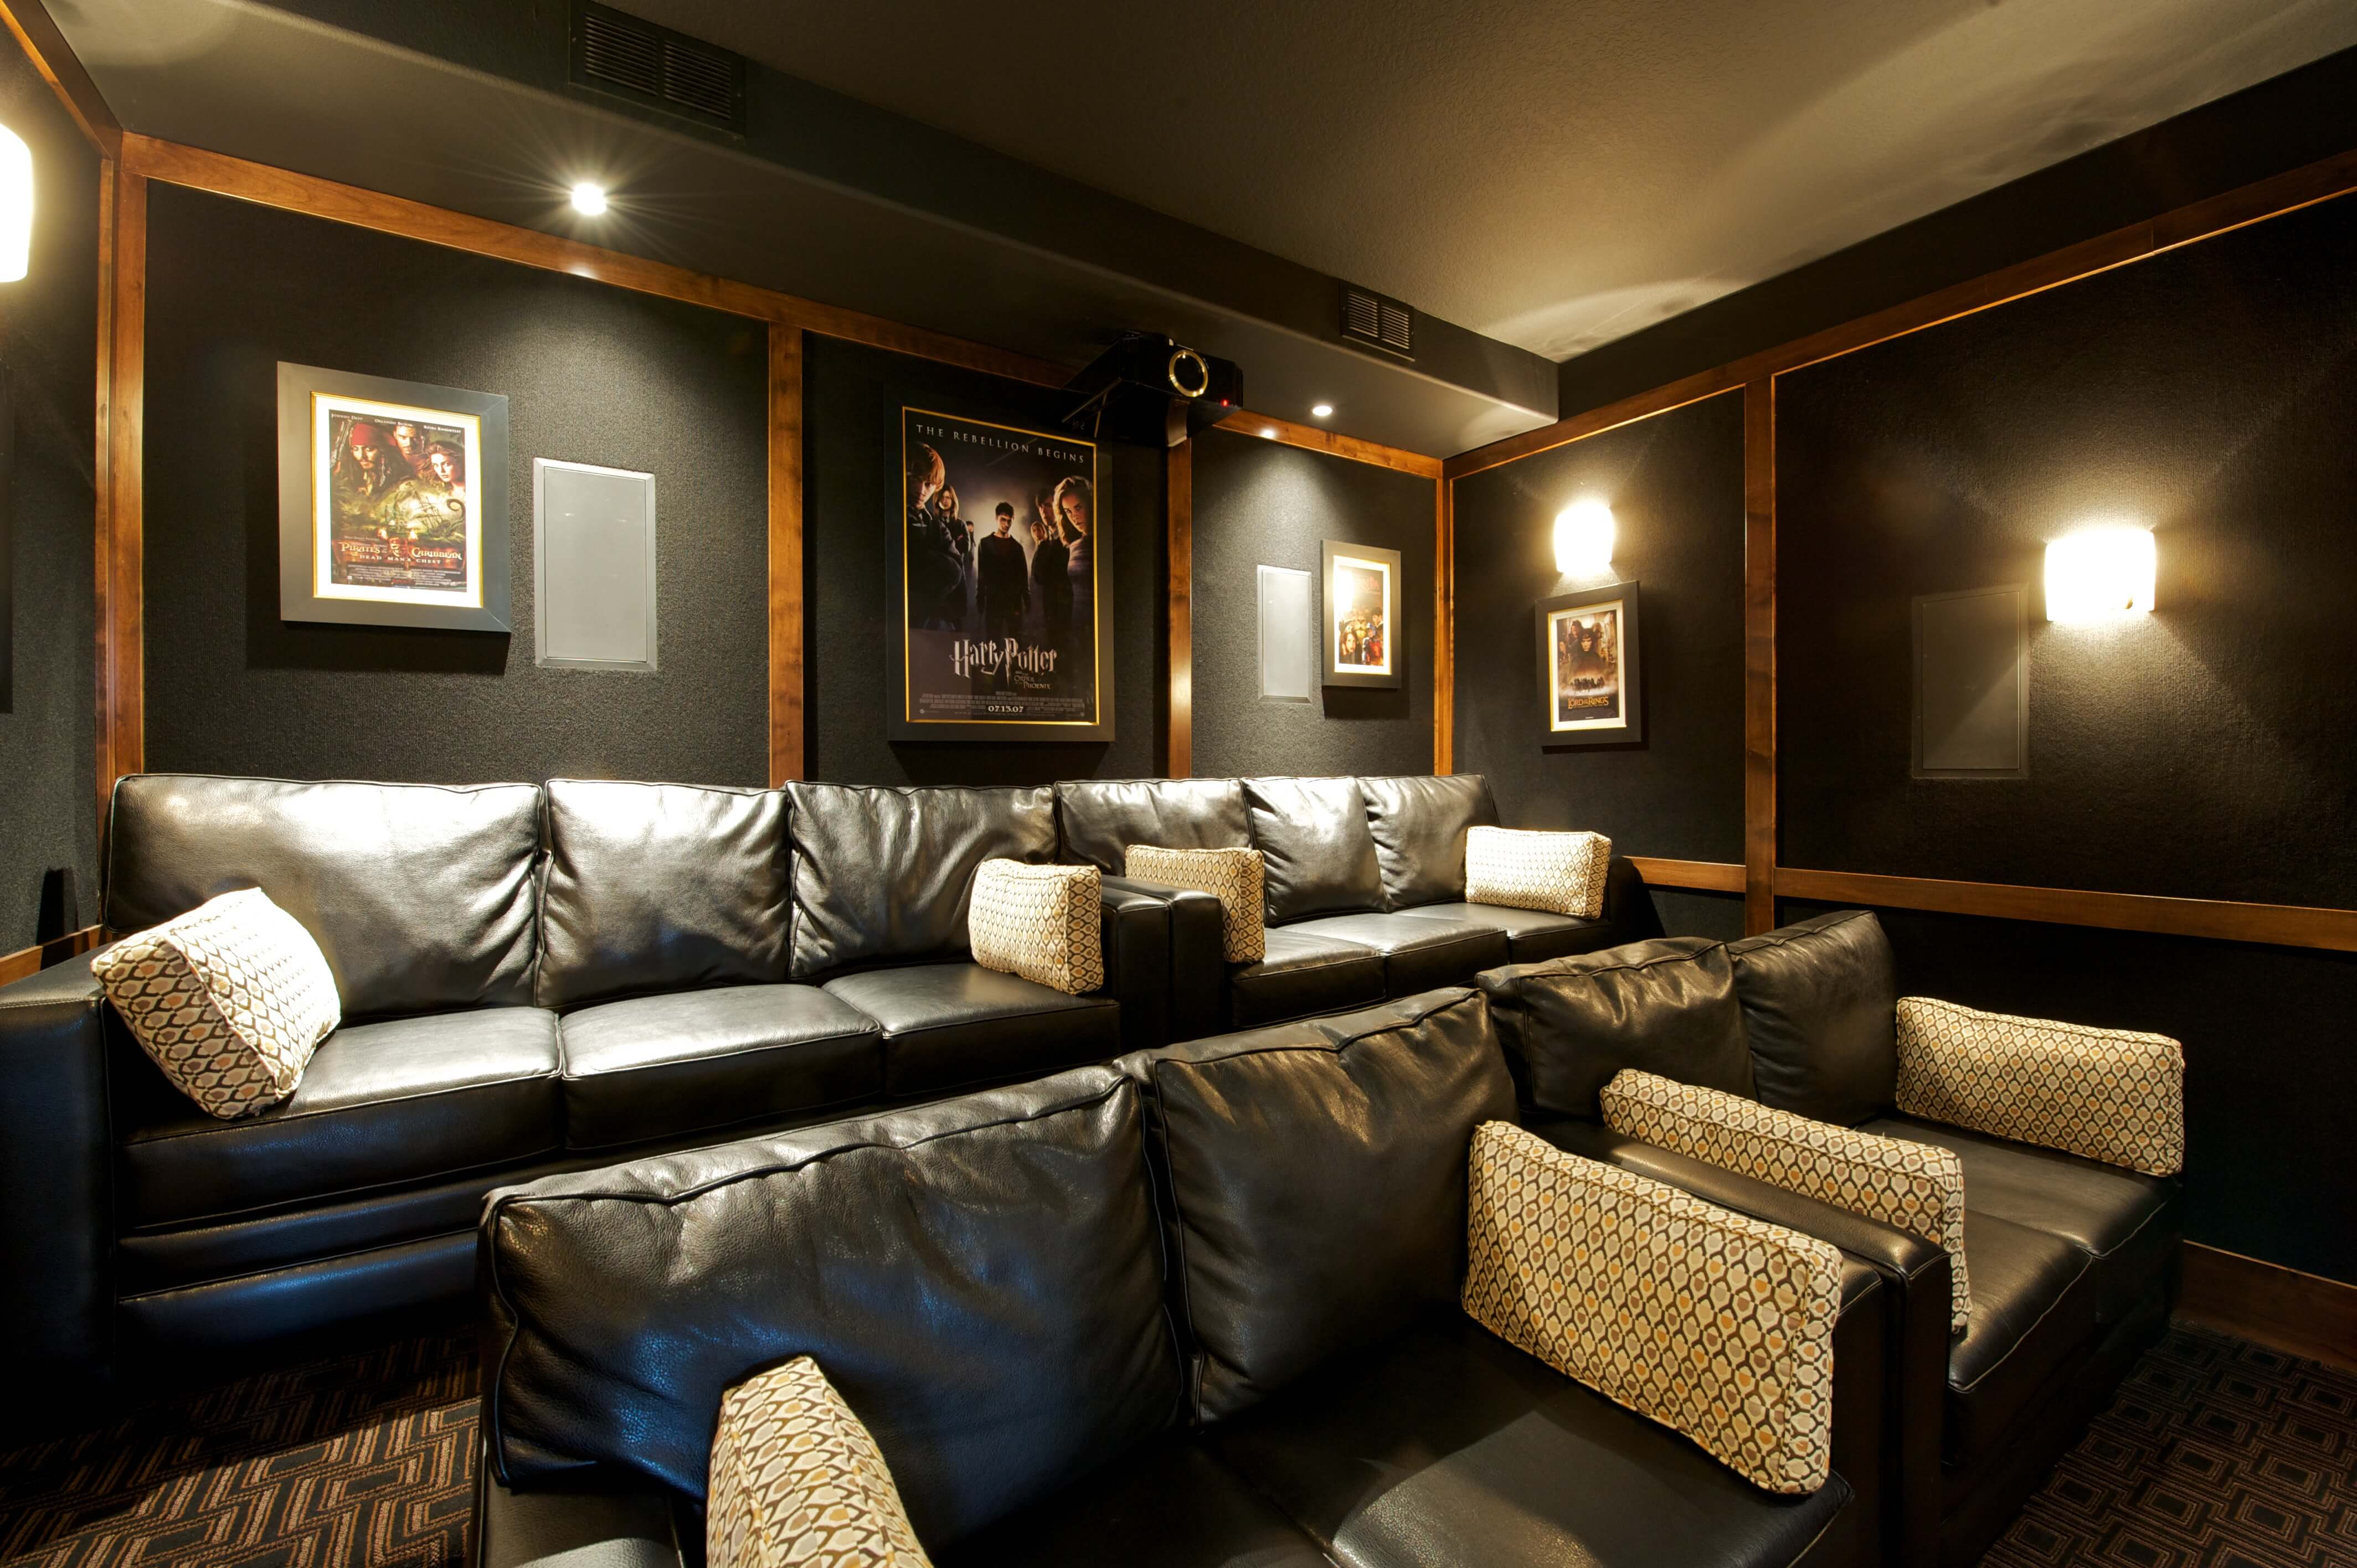 Dedicated cinema room features tiered rows of black leather couches, with black walls accented by natural wood moldings.